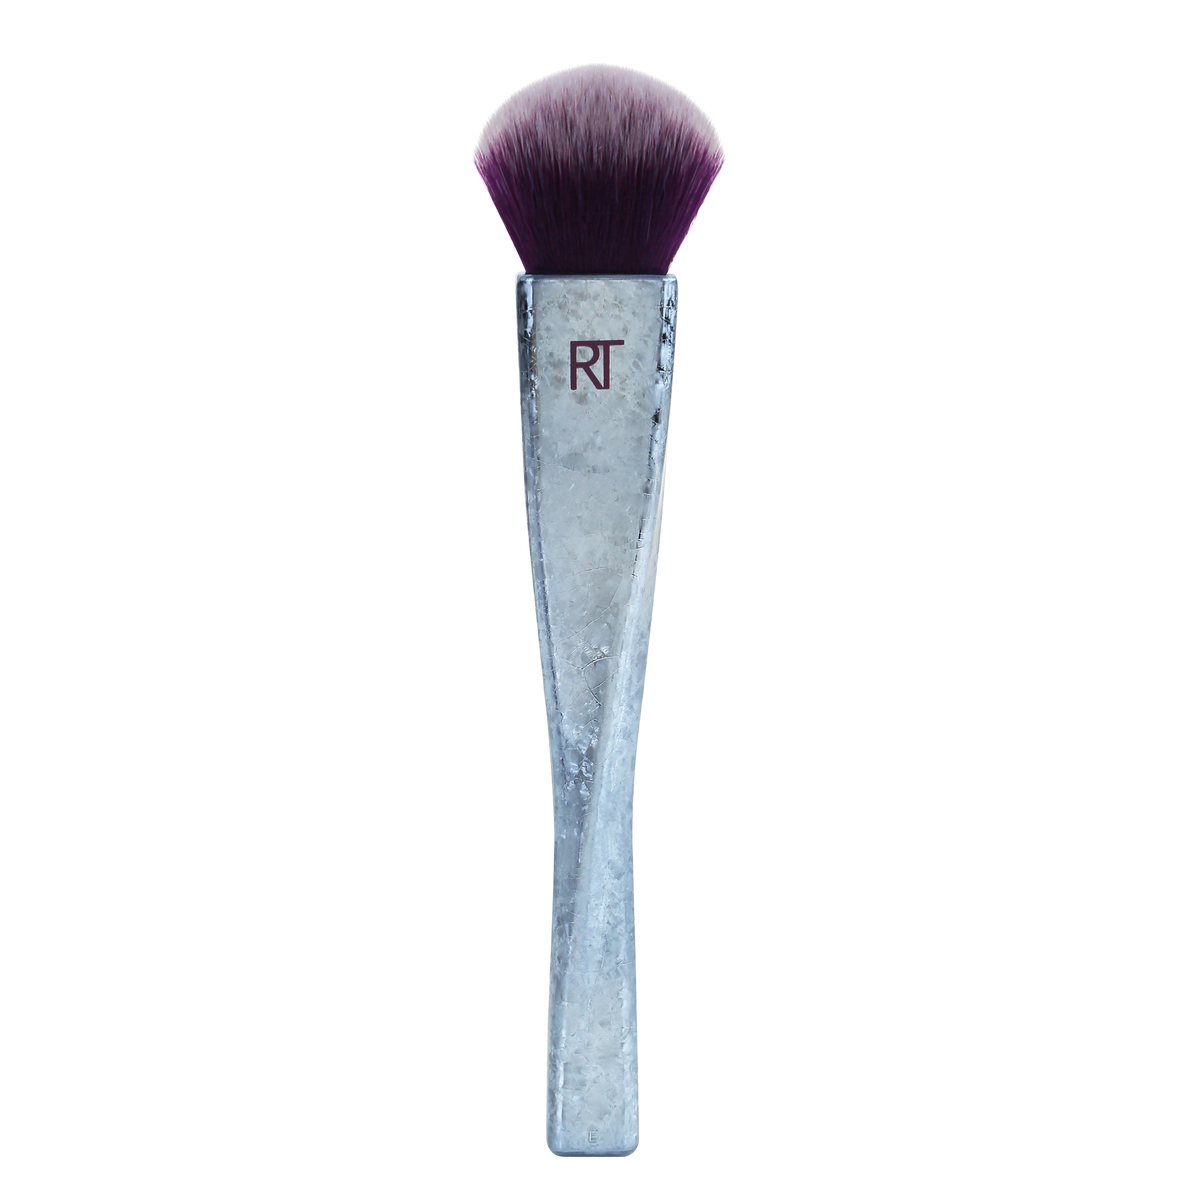 BRUSH CRUSH™ Vol. II 302 BLUSH BRUSH